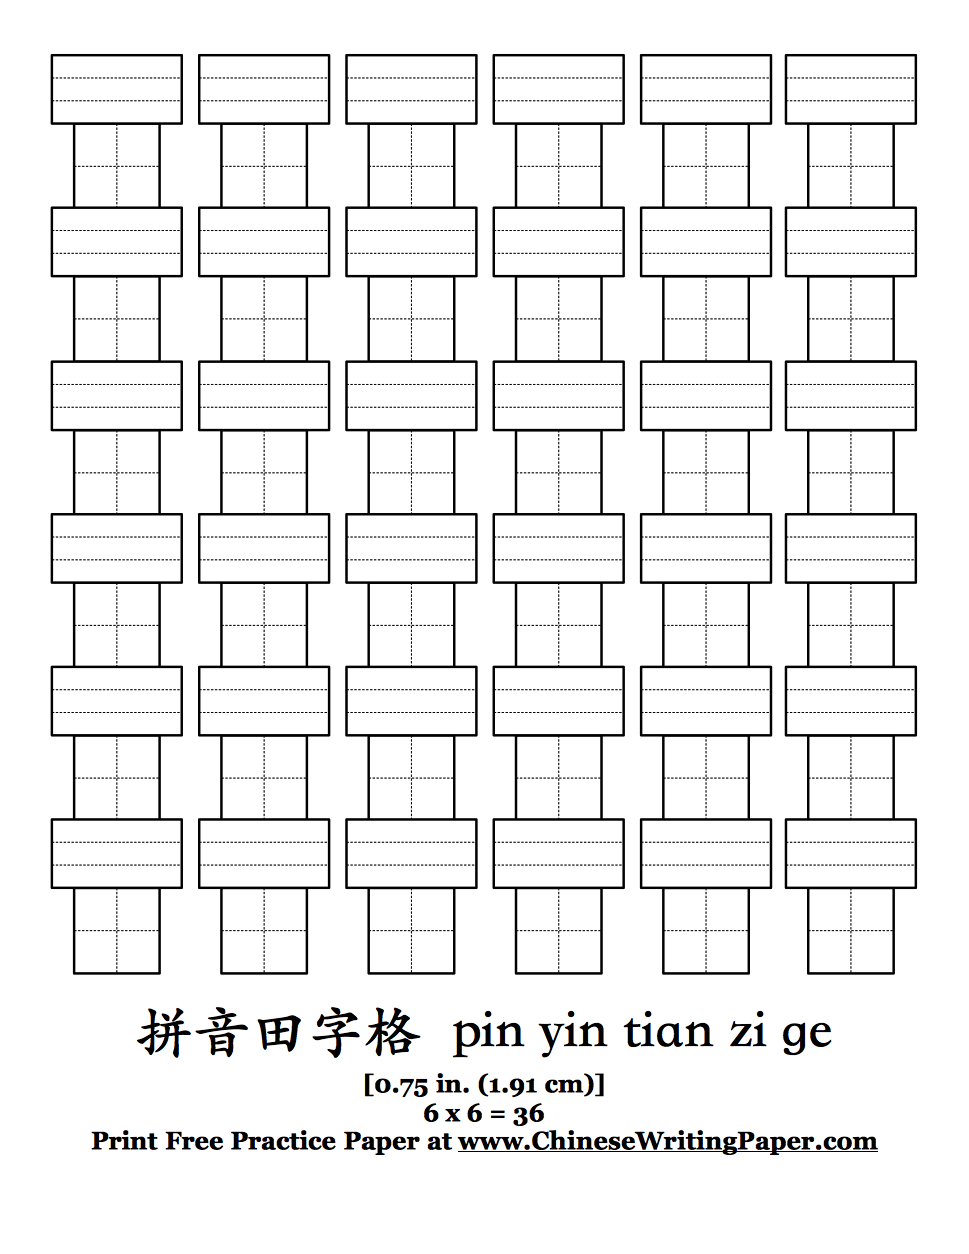 chinese writing paper, png, tianzige-pinyin-wide, 拼音田字格, 0.75 in. (1.91 cm)